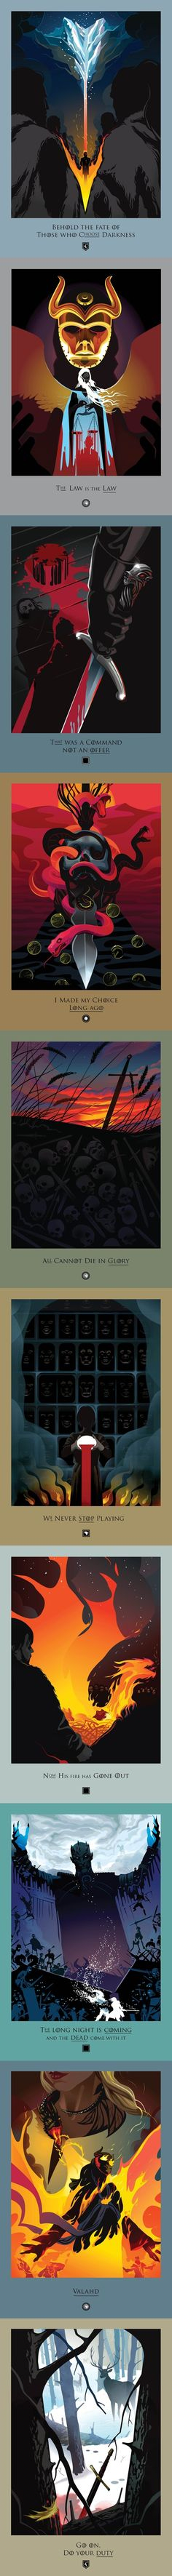 game of thrones deaths data